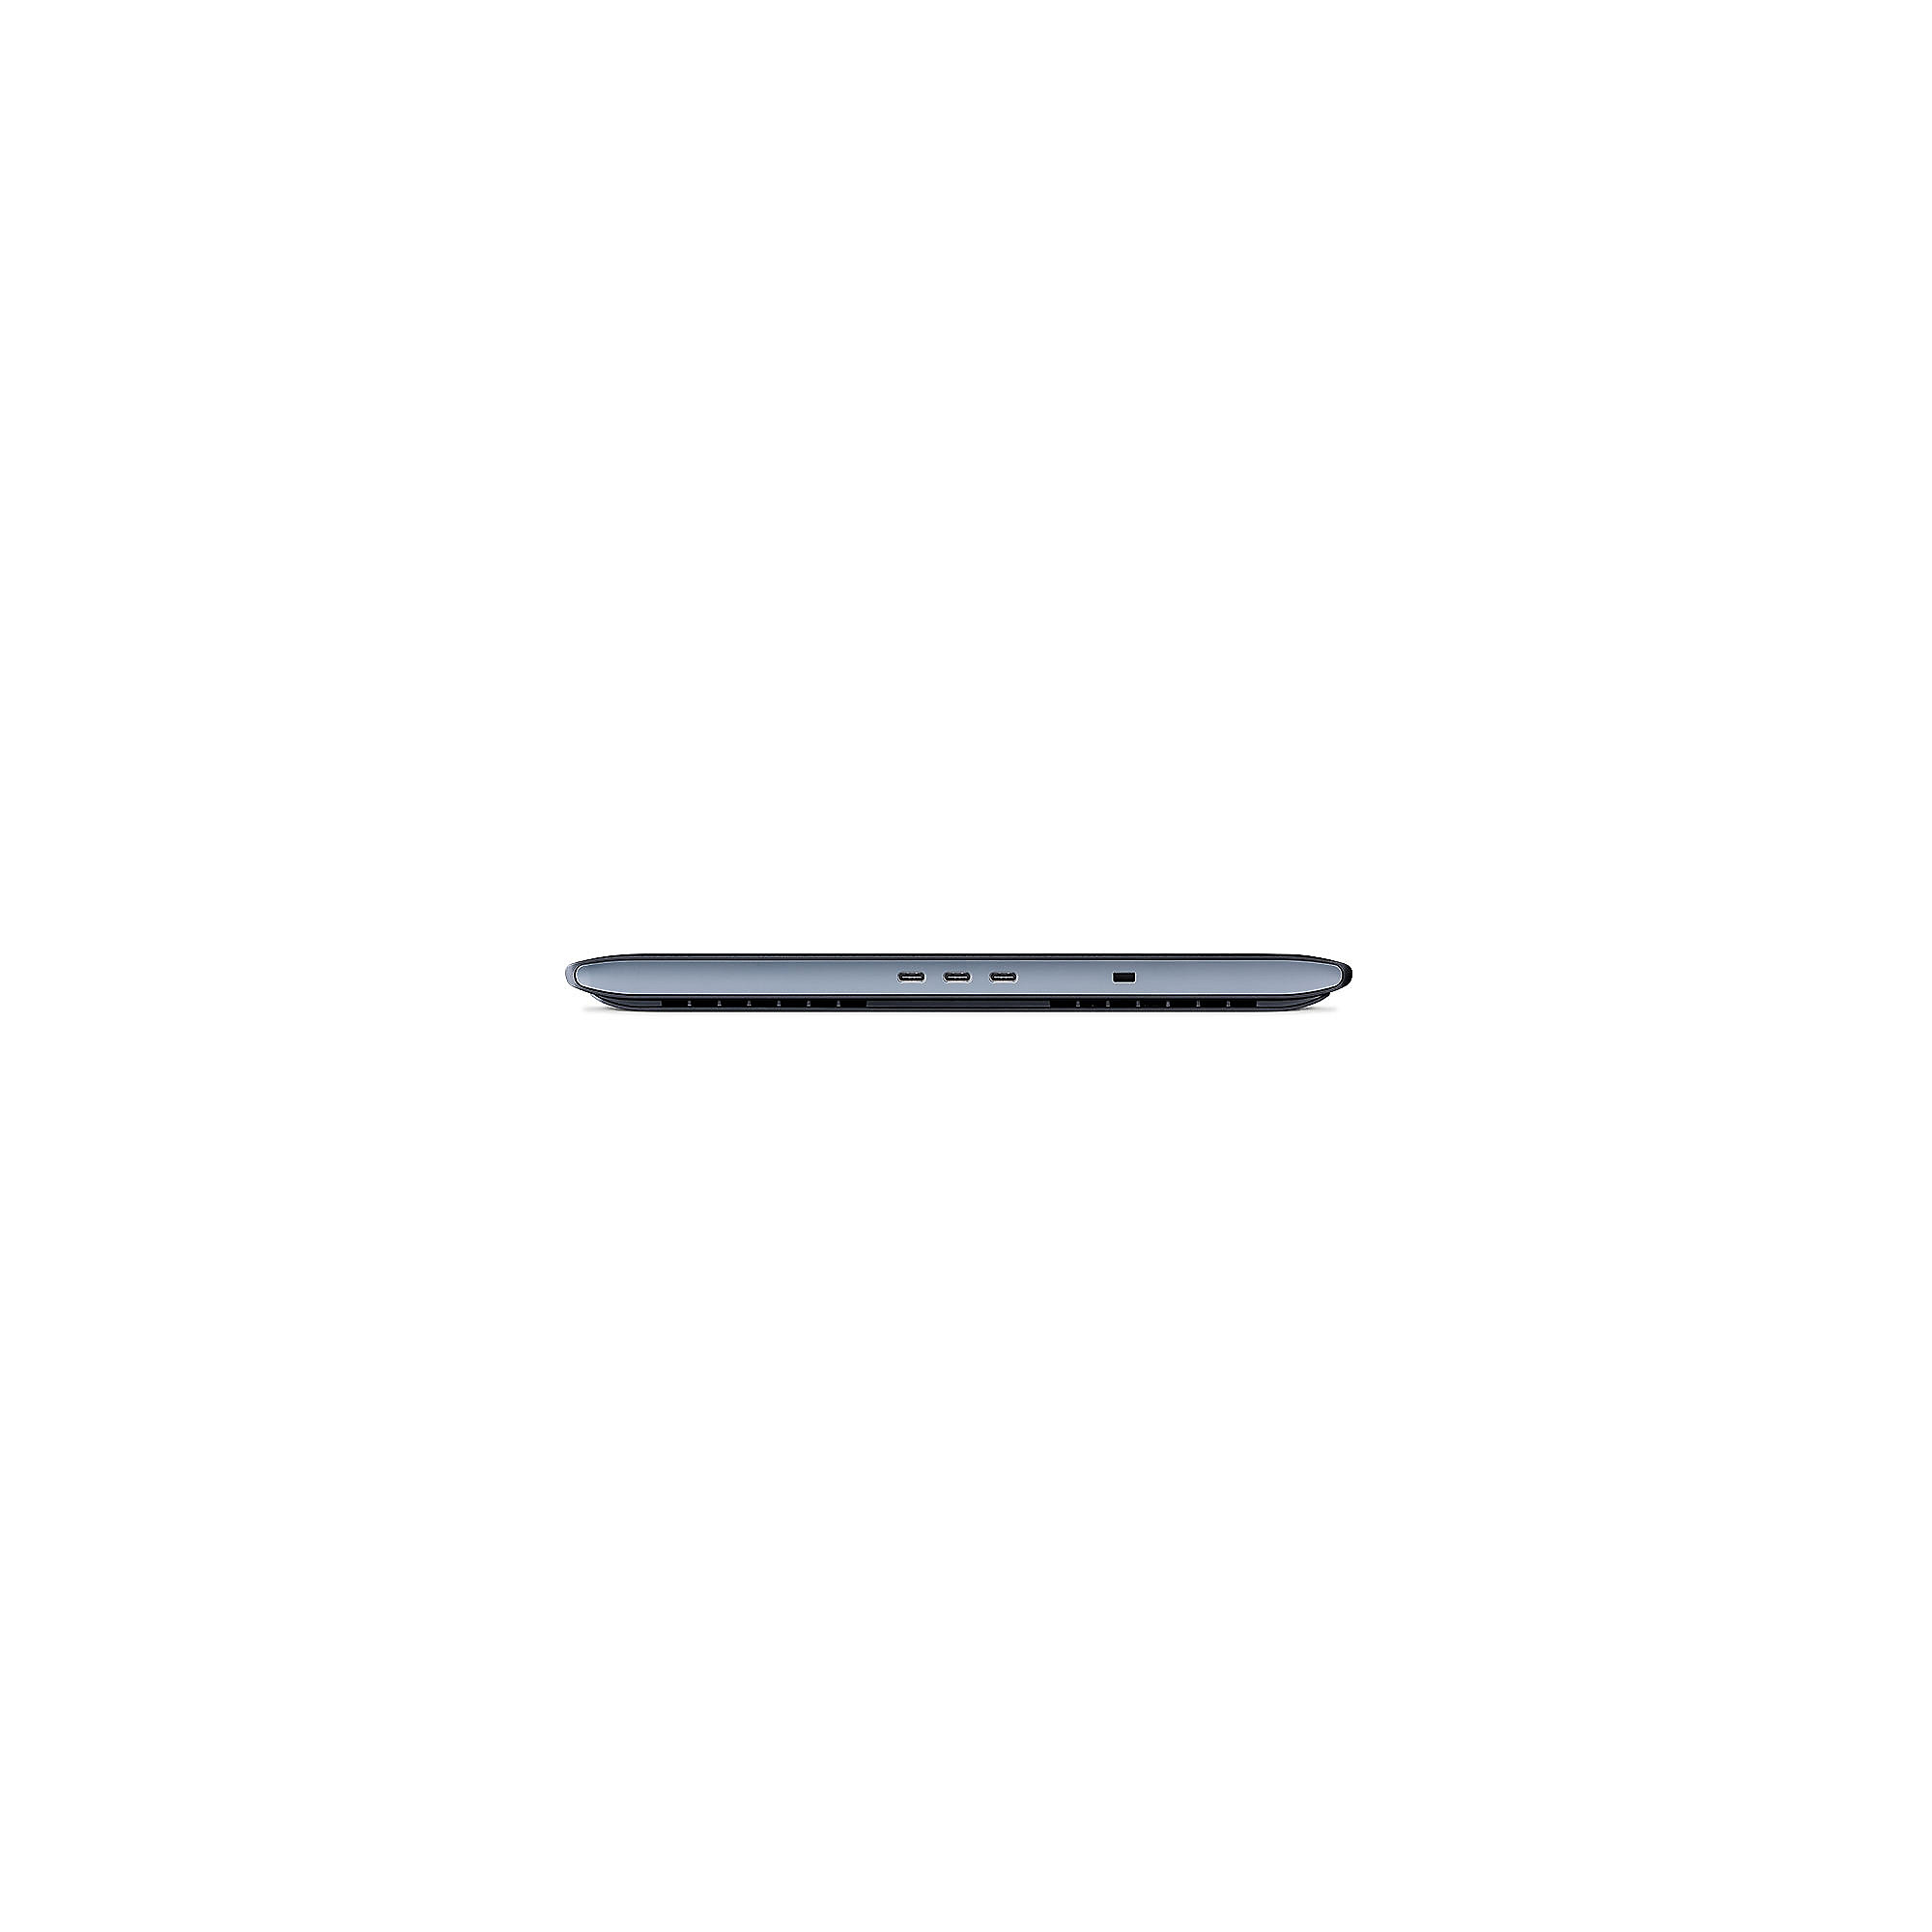 Wacom MobileStudio Pro 13 64GB 3D Stift Tablett